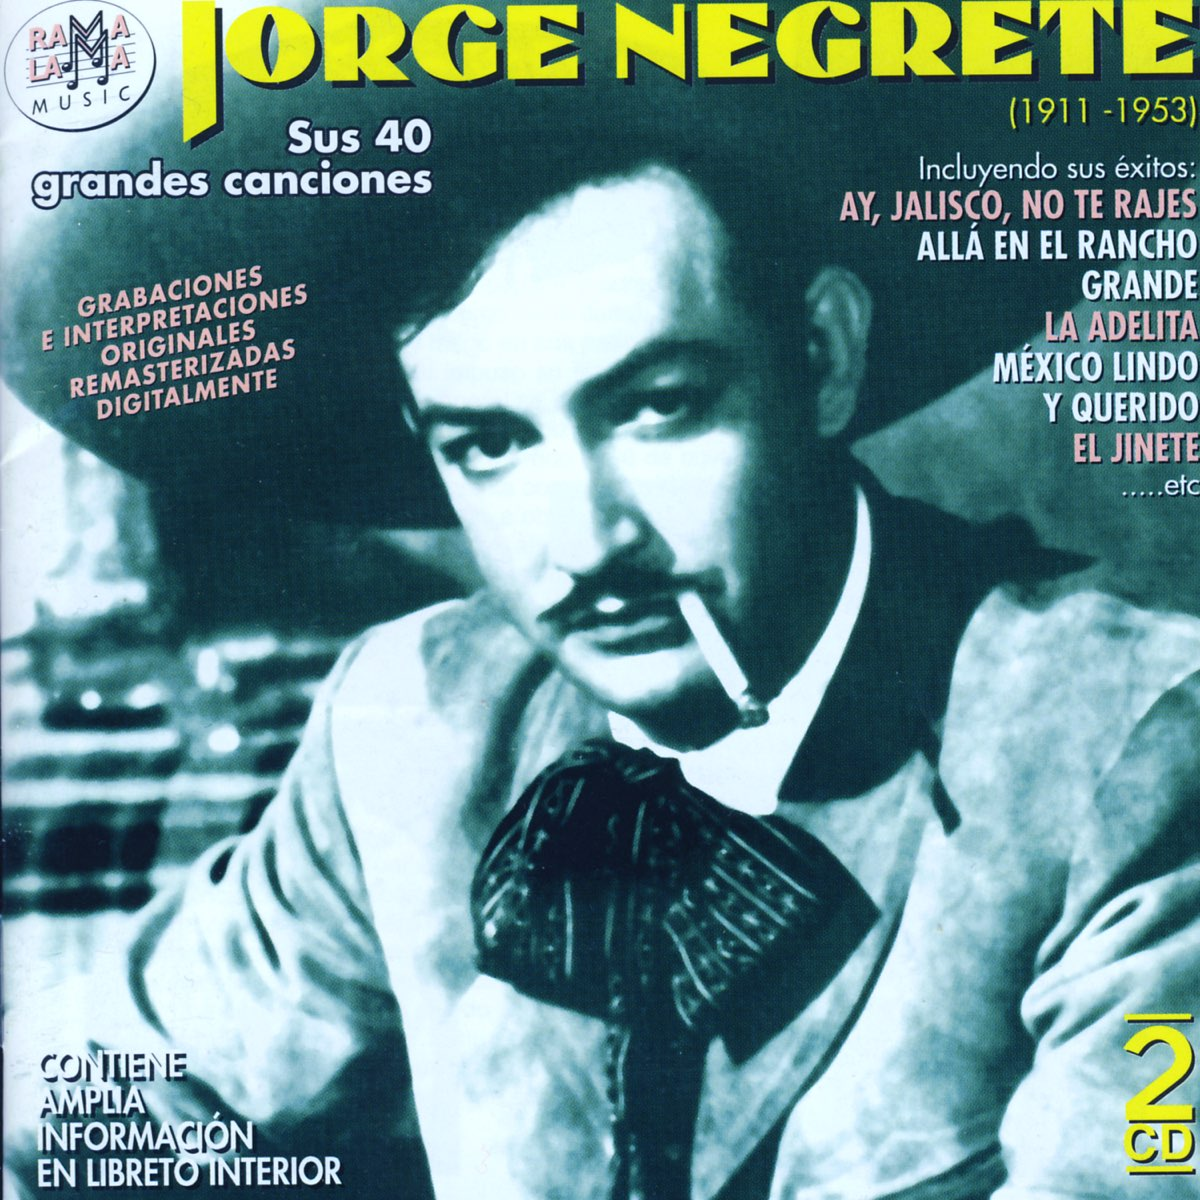 Jorge Negrete Sus 40 Grandes Canciones 1911 1953 De Jorge Negrete En Apple Music